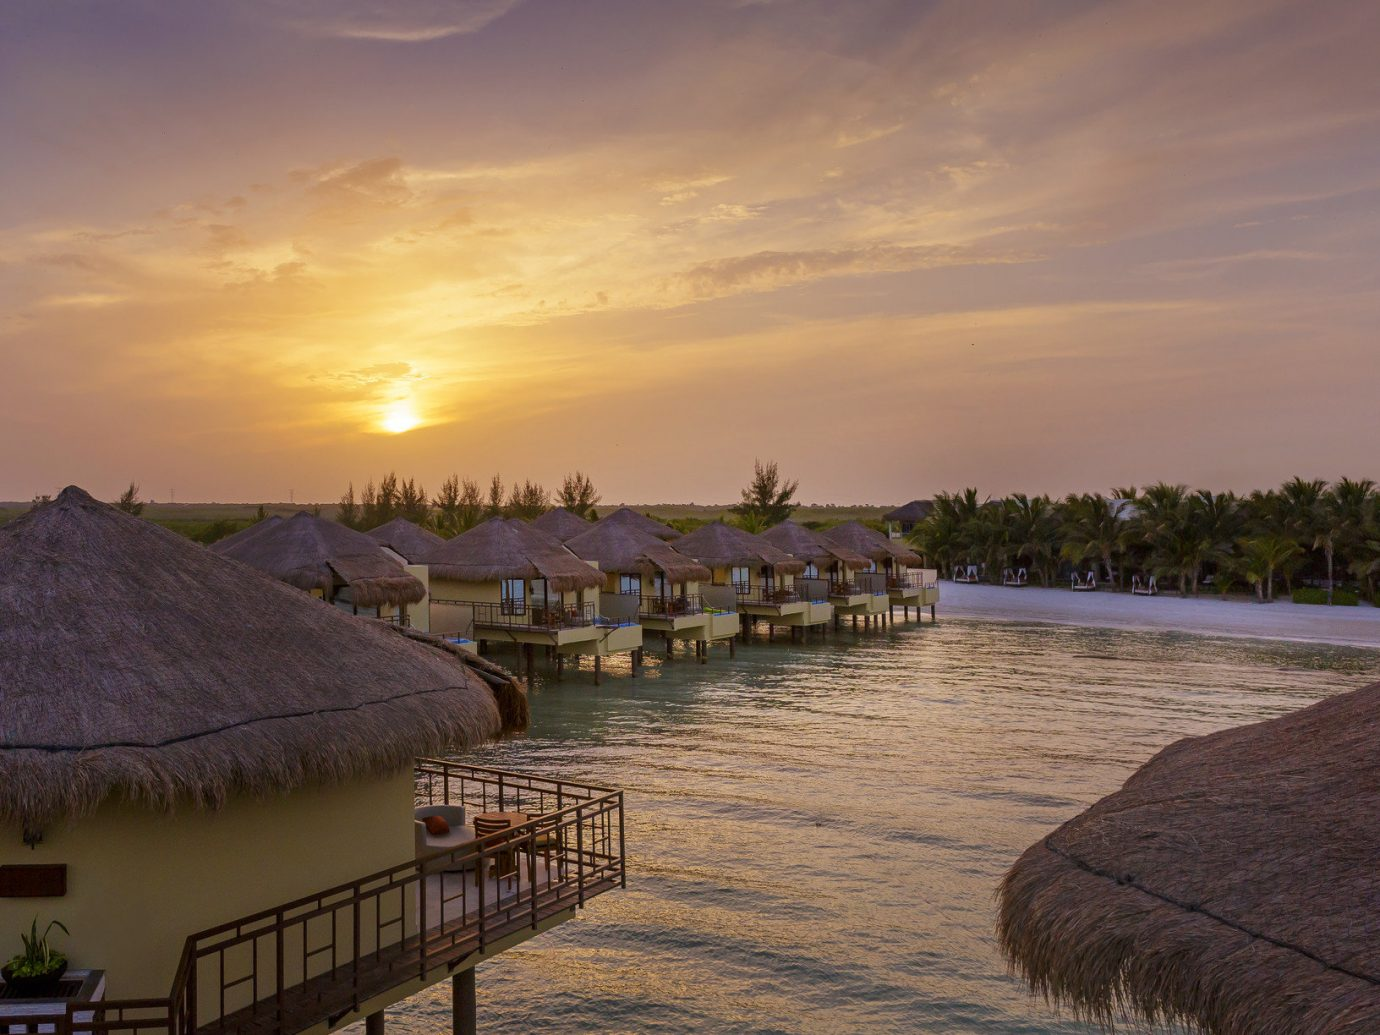 Hotels sky outdoor water shore Sea Sunset morning vacation Beach Ocean evening Coast dusk River dawn bay sunrise